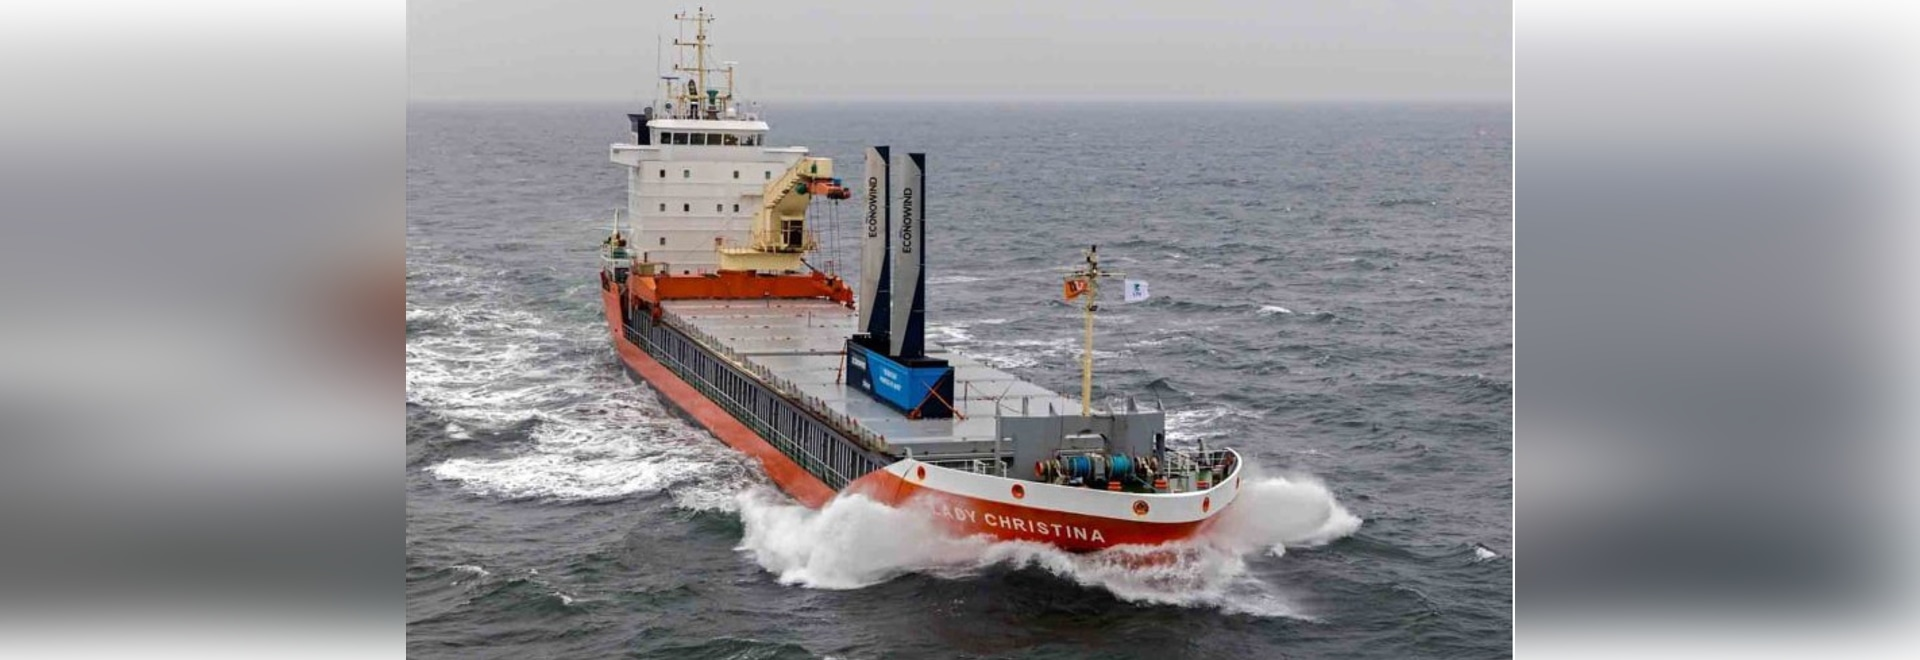 VENTIFOILS DEVICES TO BE FITTED TO CARGO VESSELS